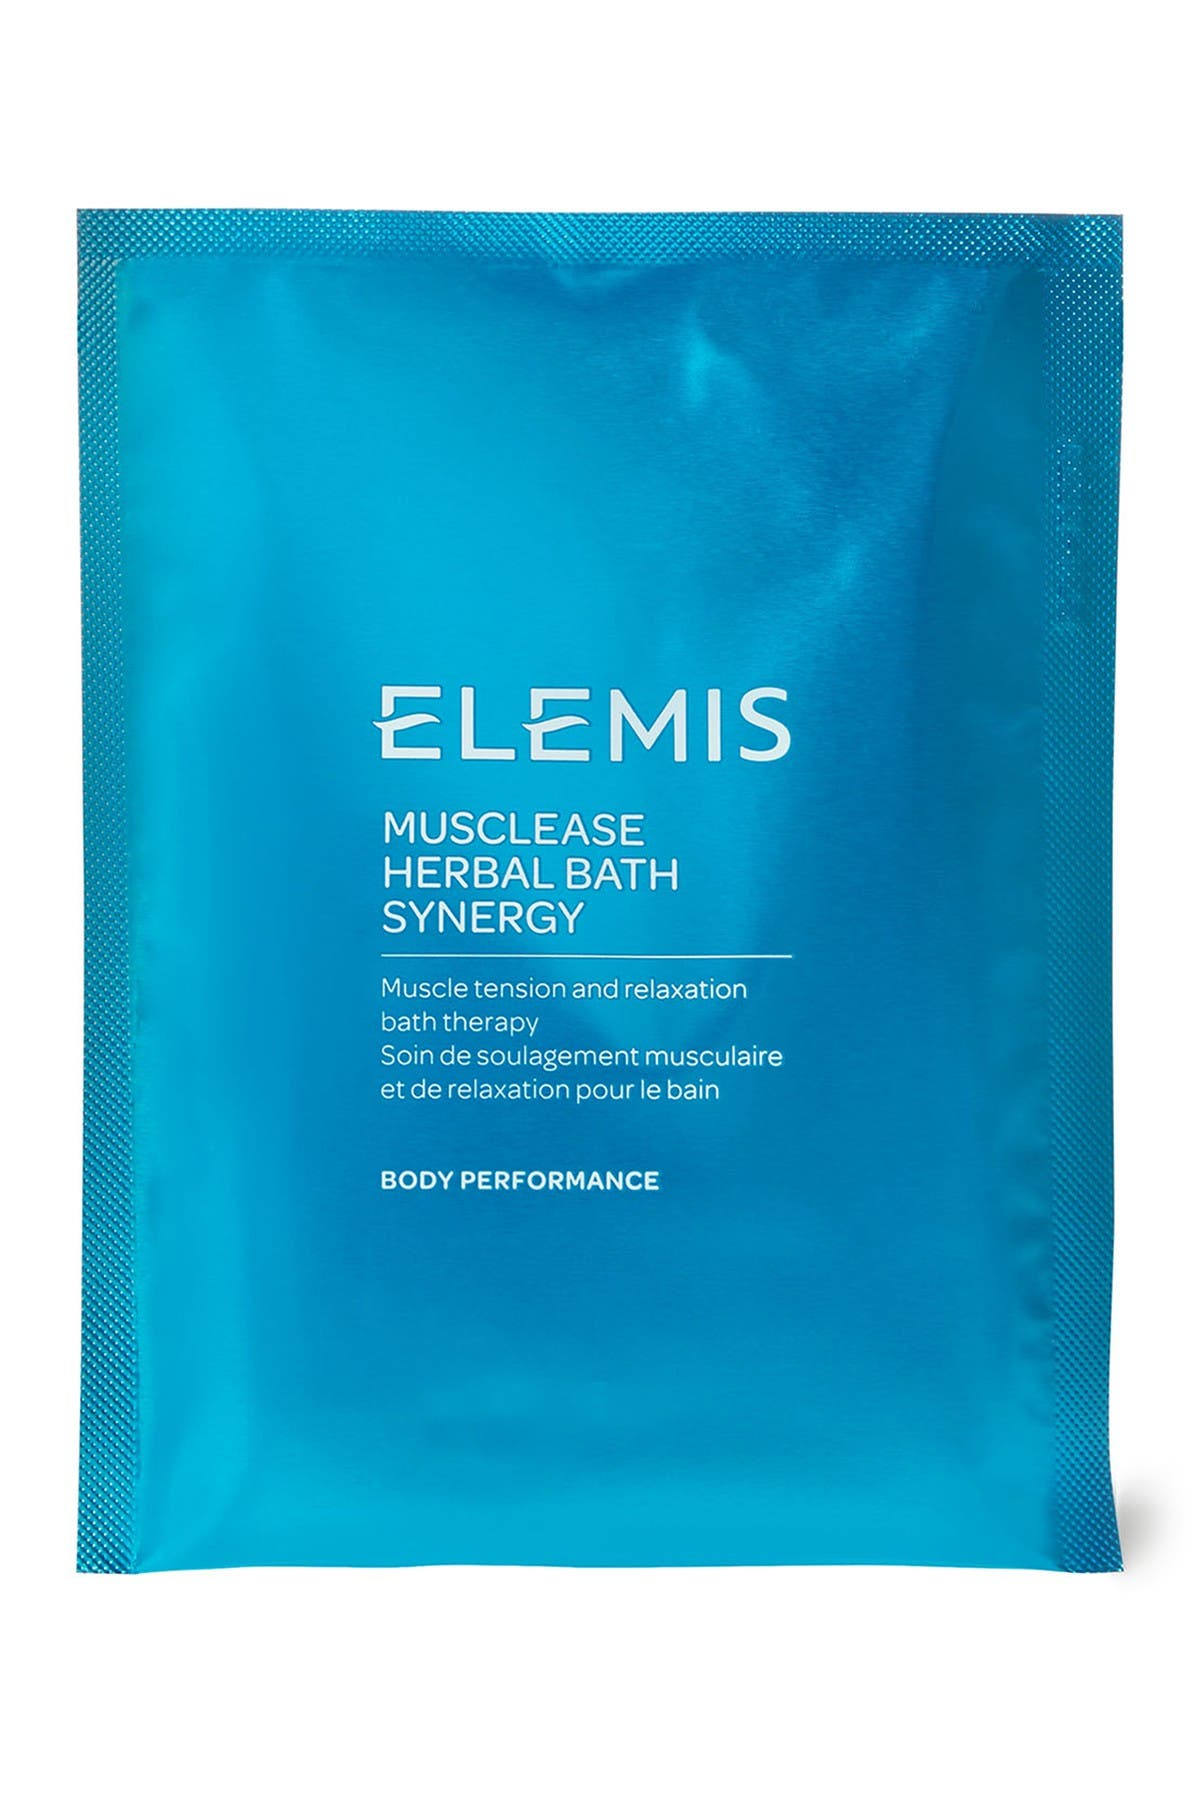 Image of Elemis Musclease Herbal Bath Synergy